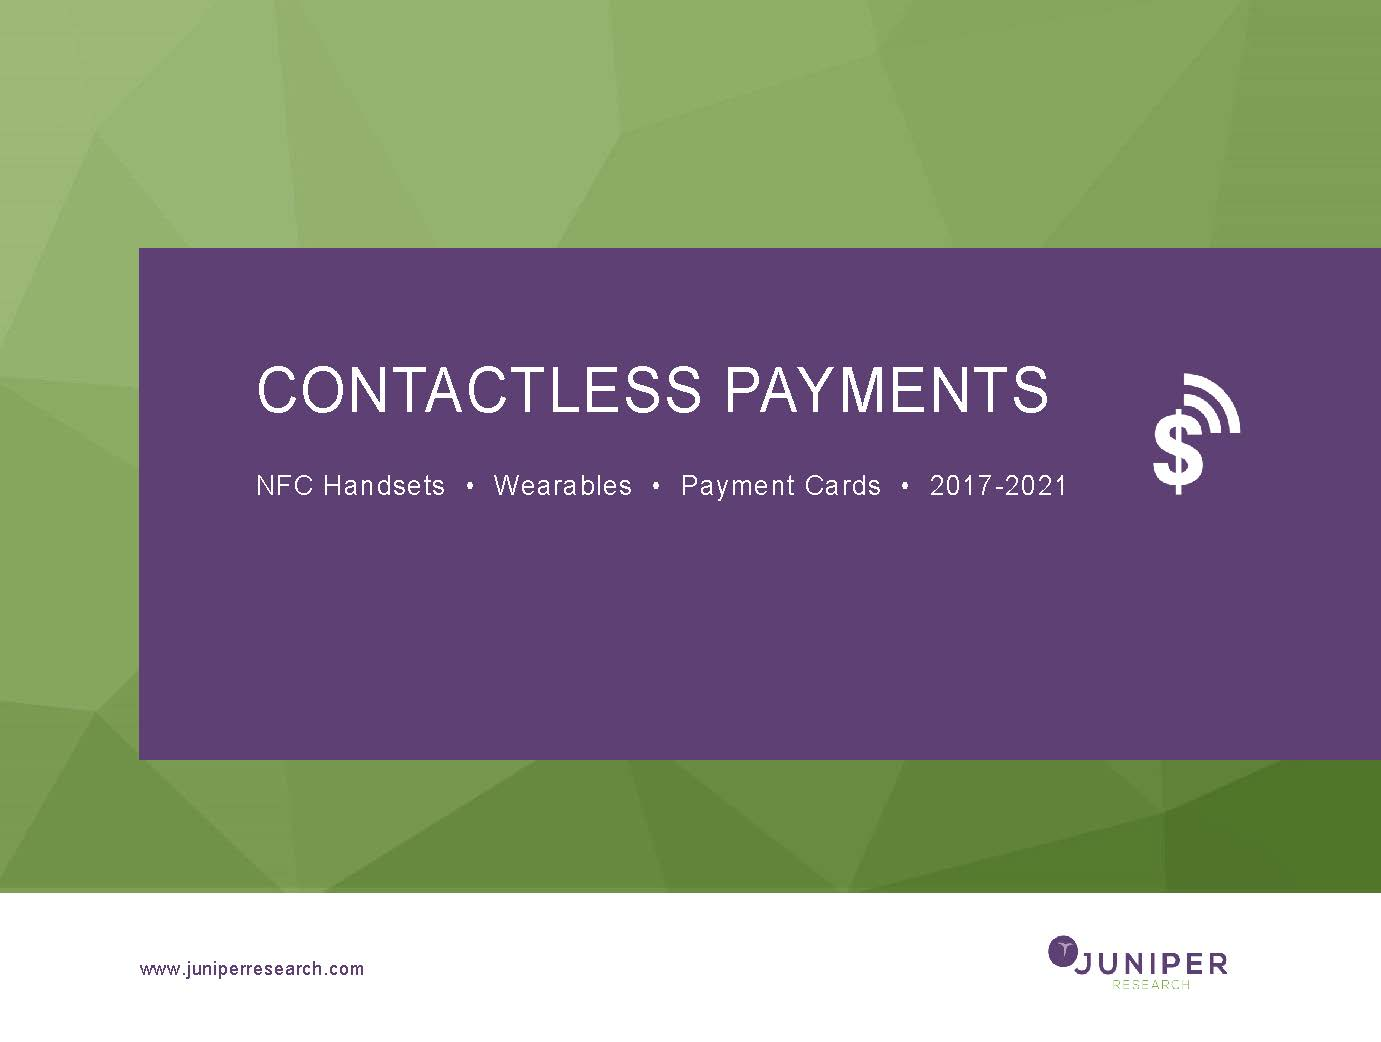 NFC Mobile Ticketing & Coupons